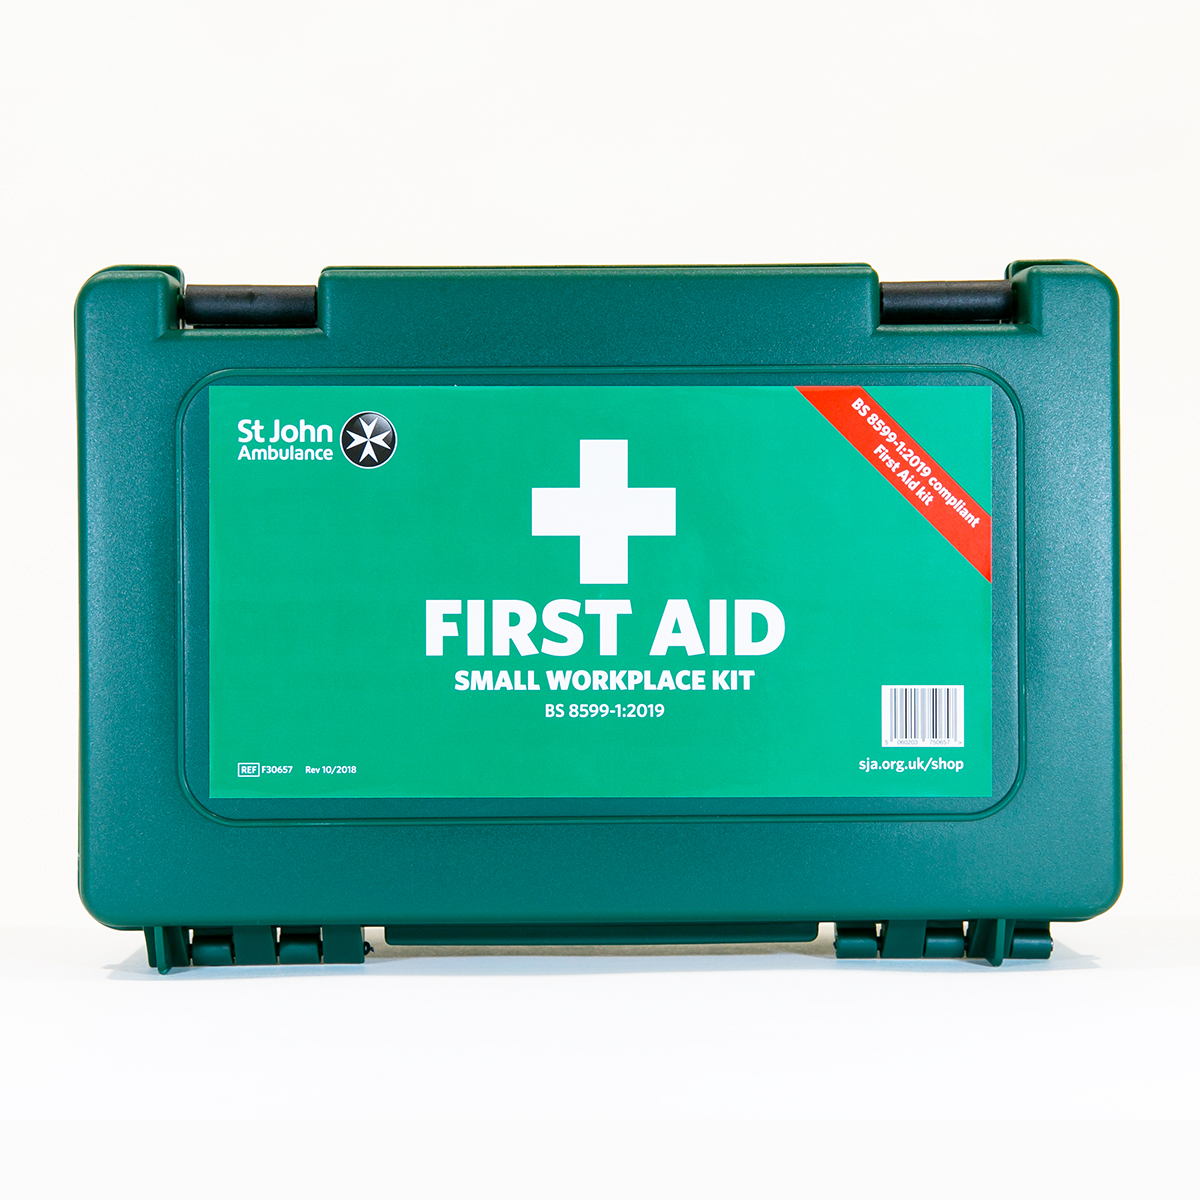 St John Ambulance Small Standard Workplace First Aid Kit BS 8599-1:2019